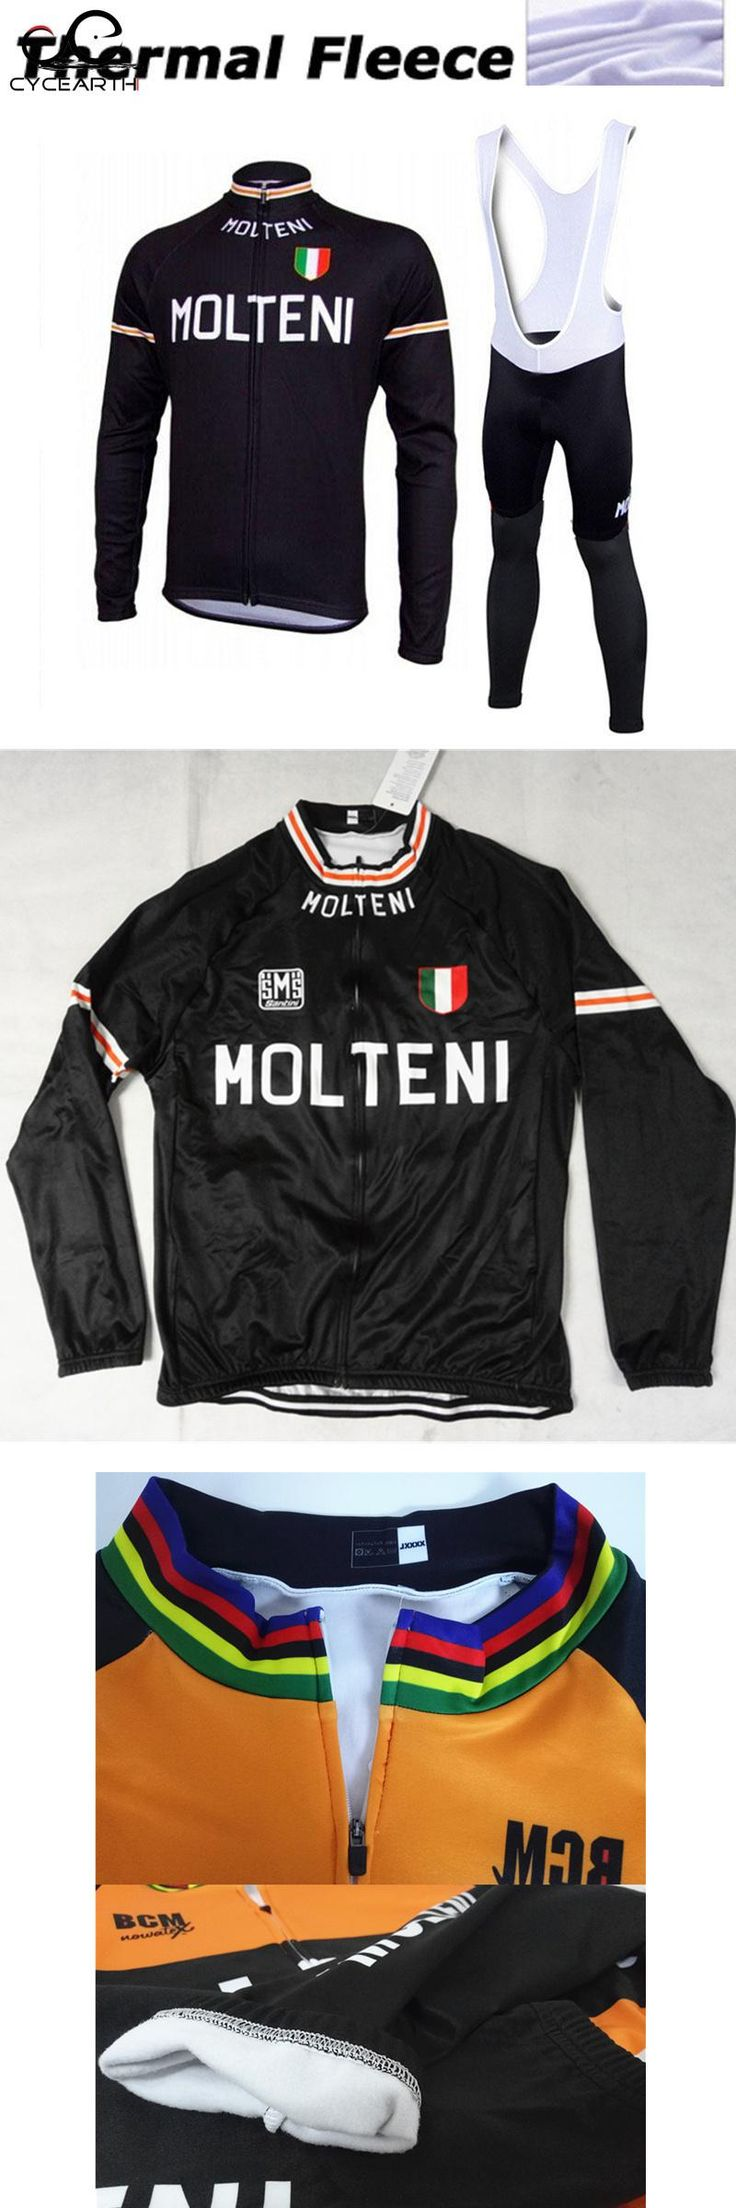 [Visit to Buy] Molteni Winter cycling clothing ropa ciclismo thermal Long sleeves maillot cycling jersey warm hombre bicicleta bike mtb #447 #Advertisement